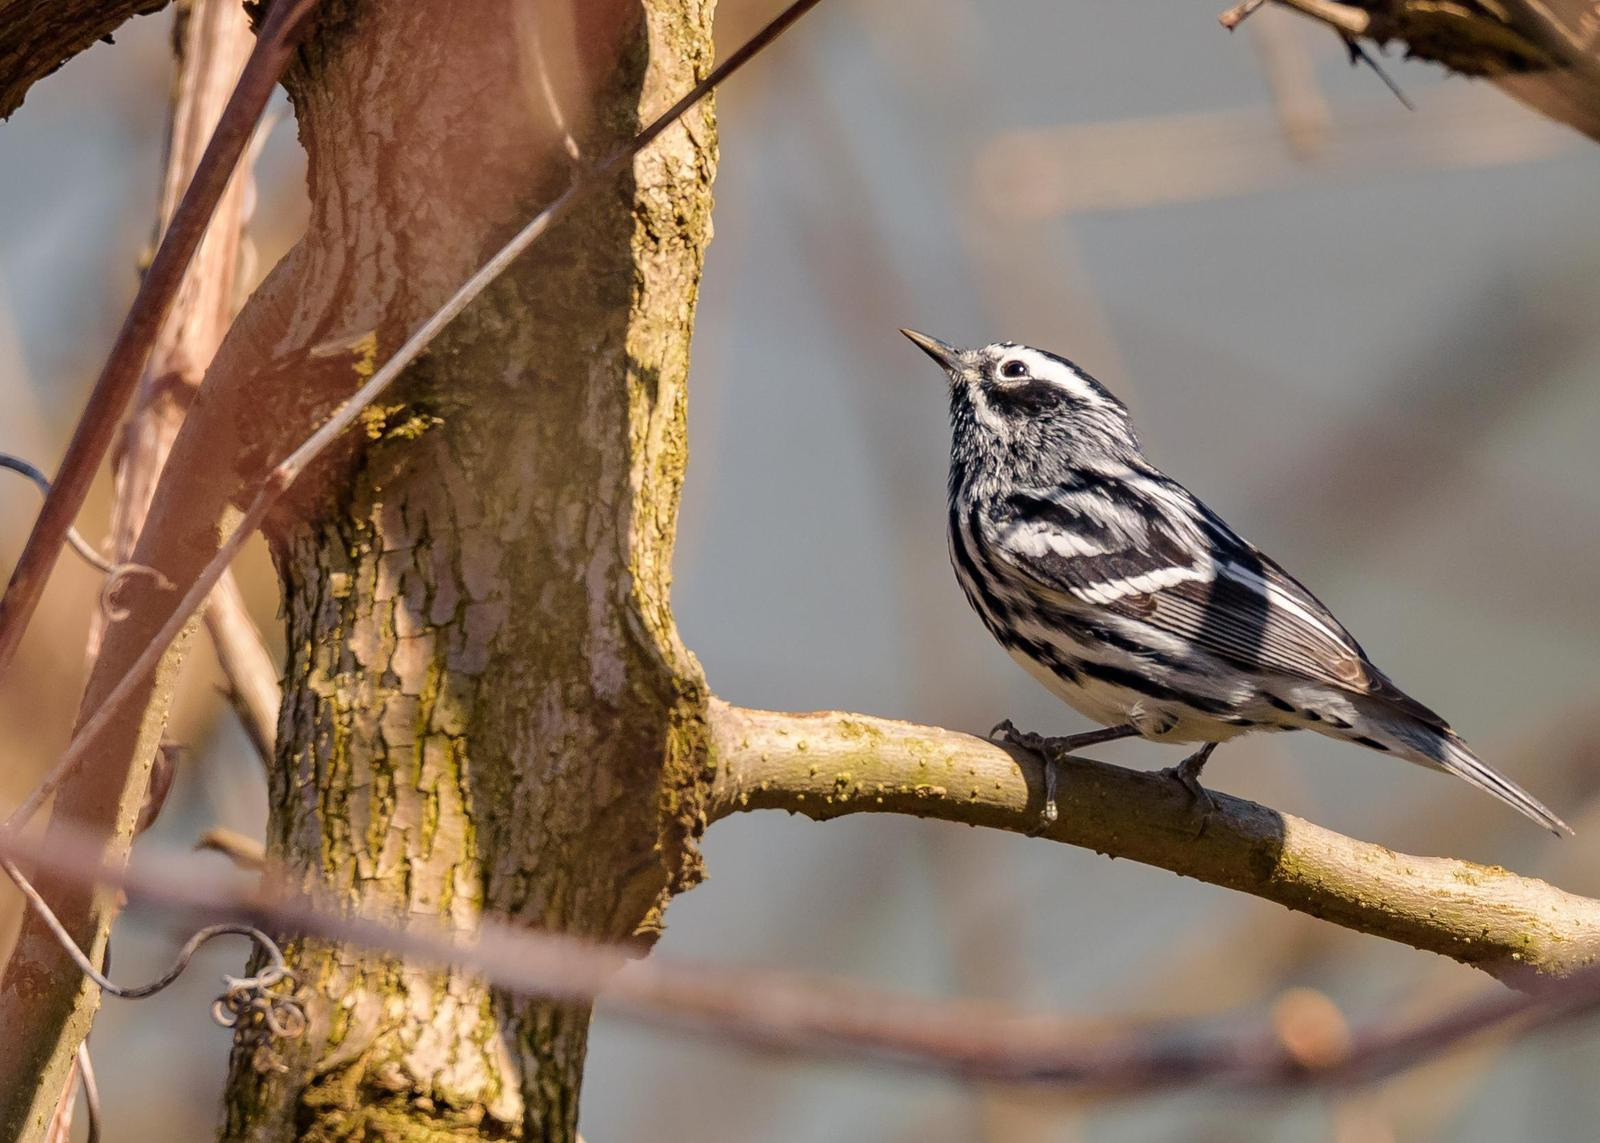 Black-and-white Warbler Photo by Keshava Mysore